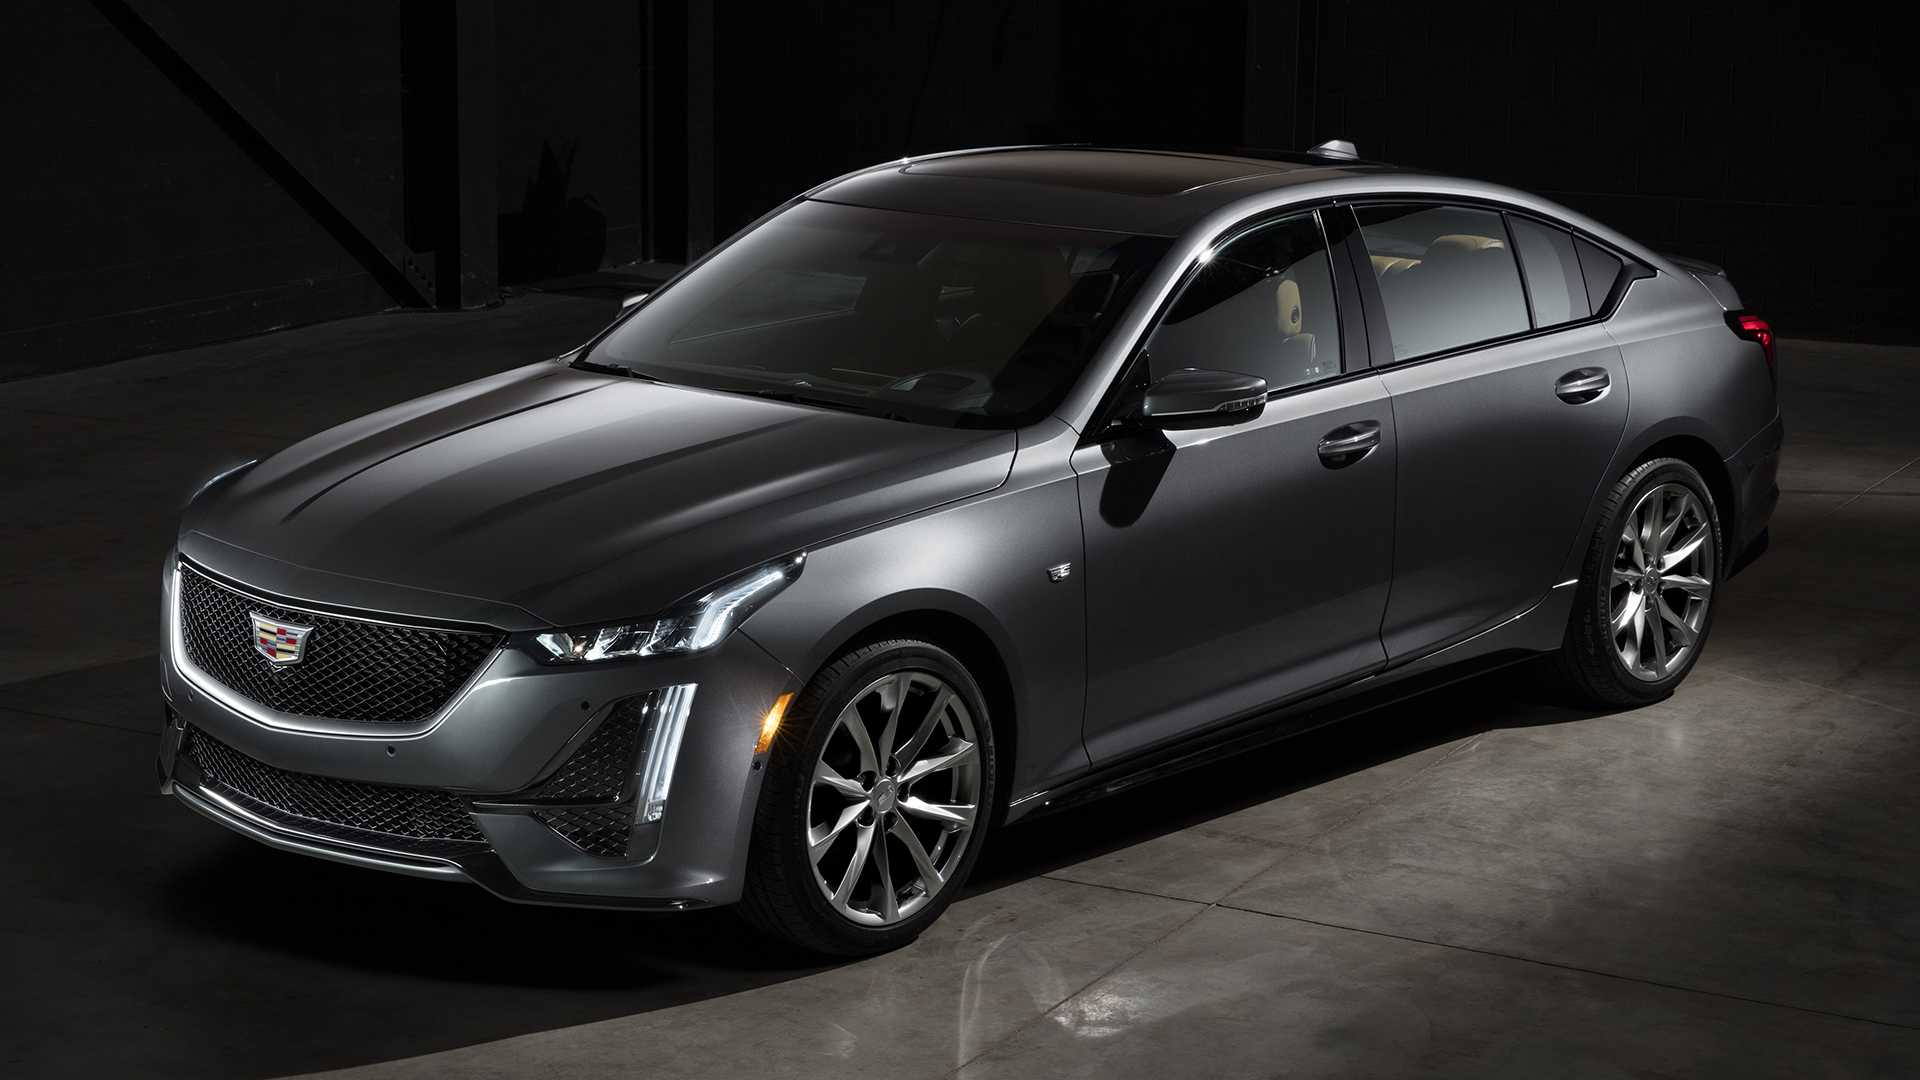 73 Best Review 2020 Cadillac Ct5 Interior Spy Shoot by 2020 Cadillac Ct5 Interior